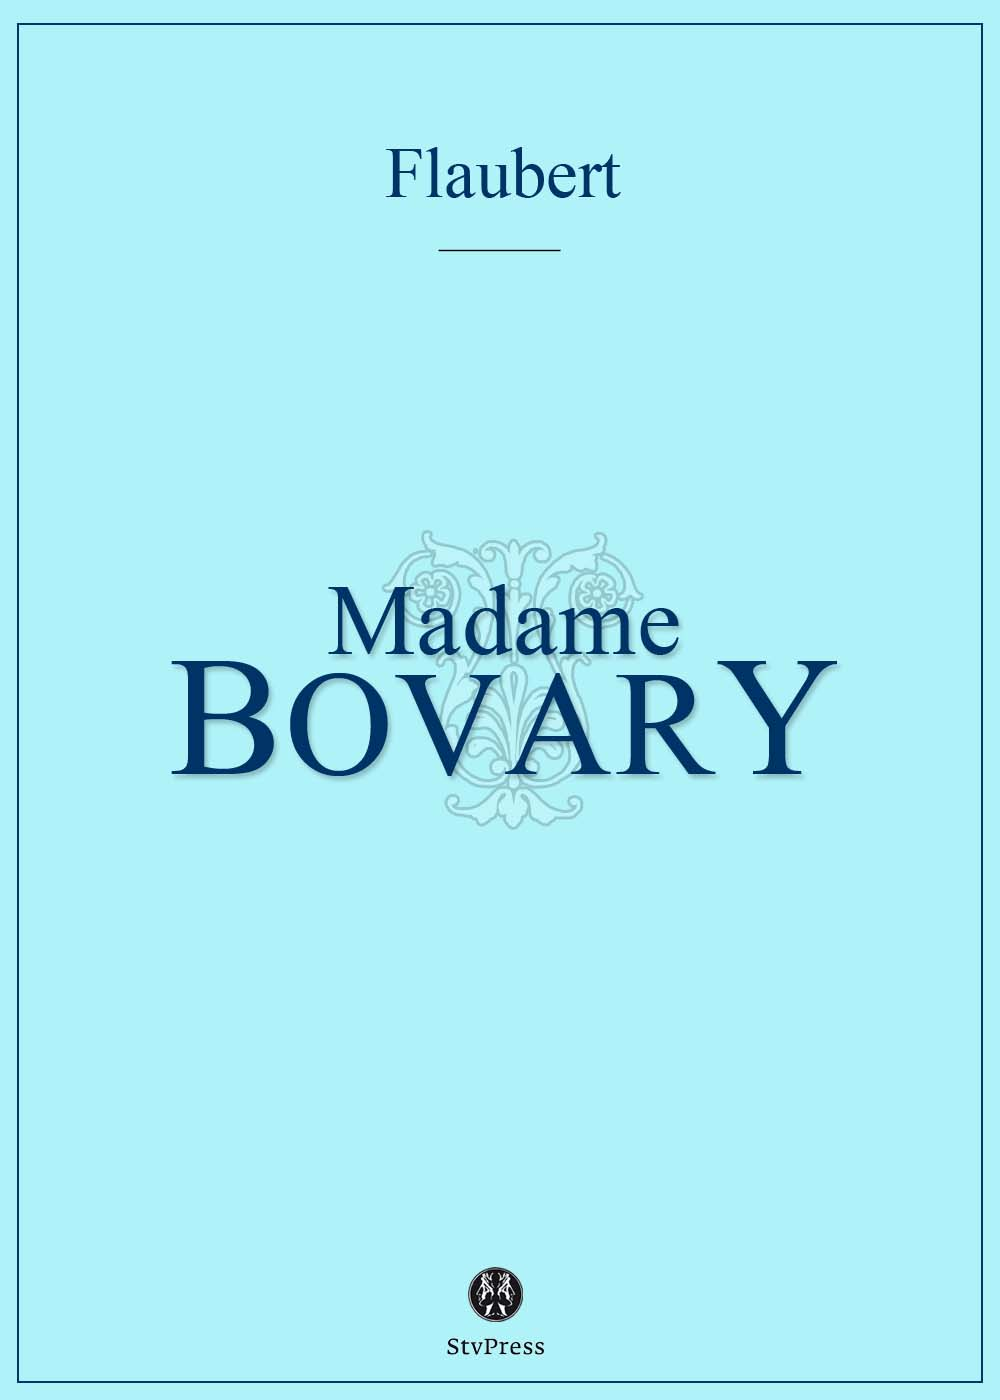 Mme Bovary